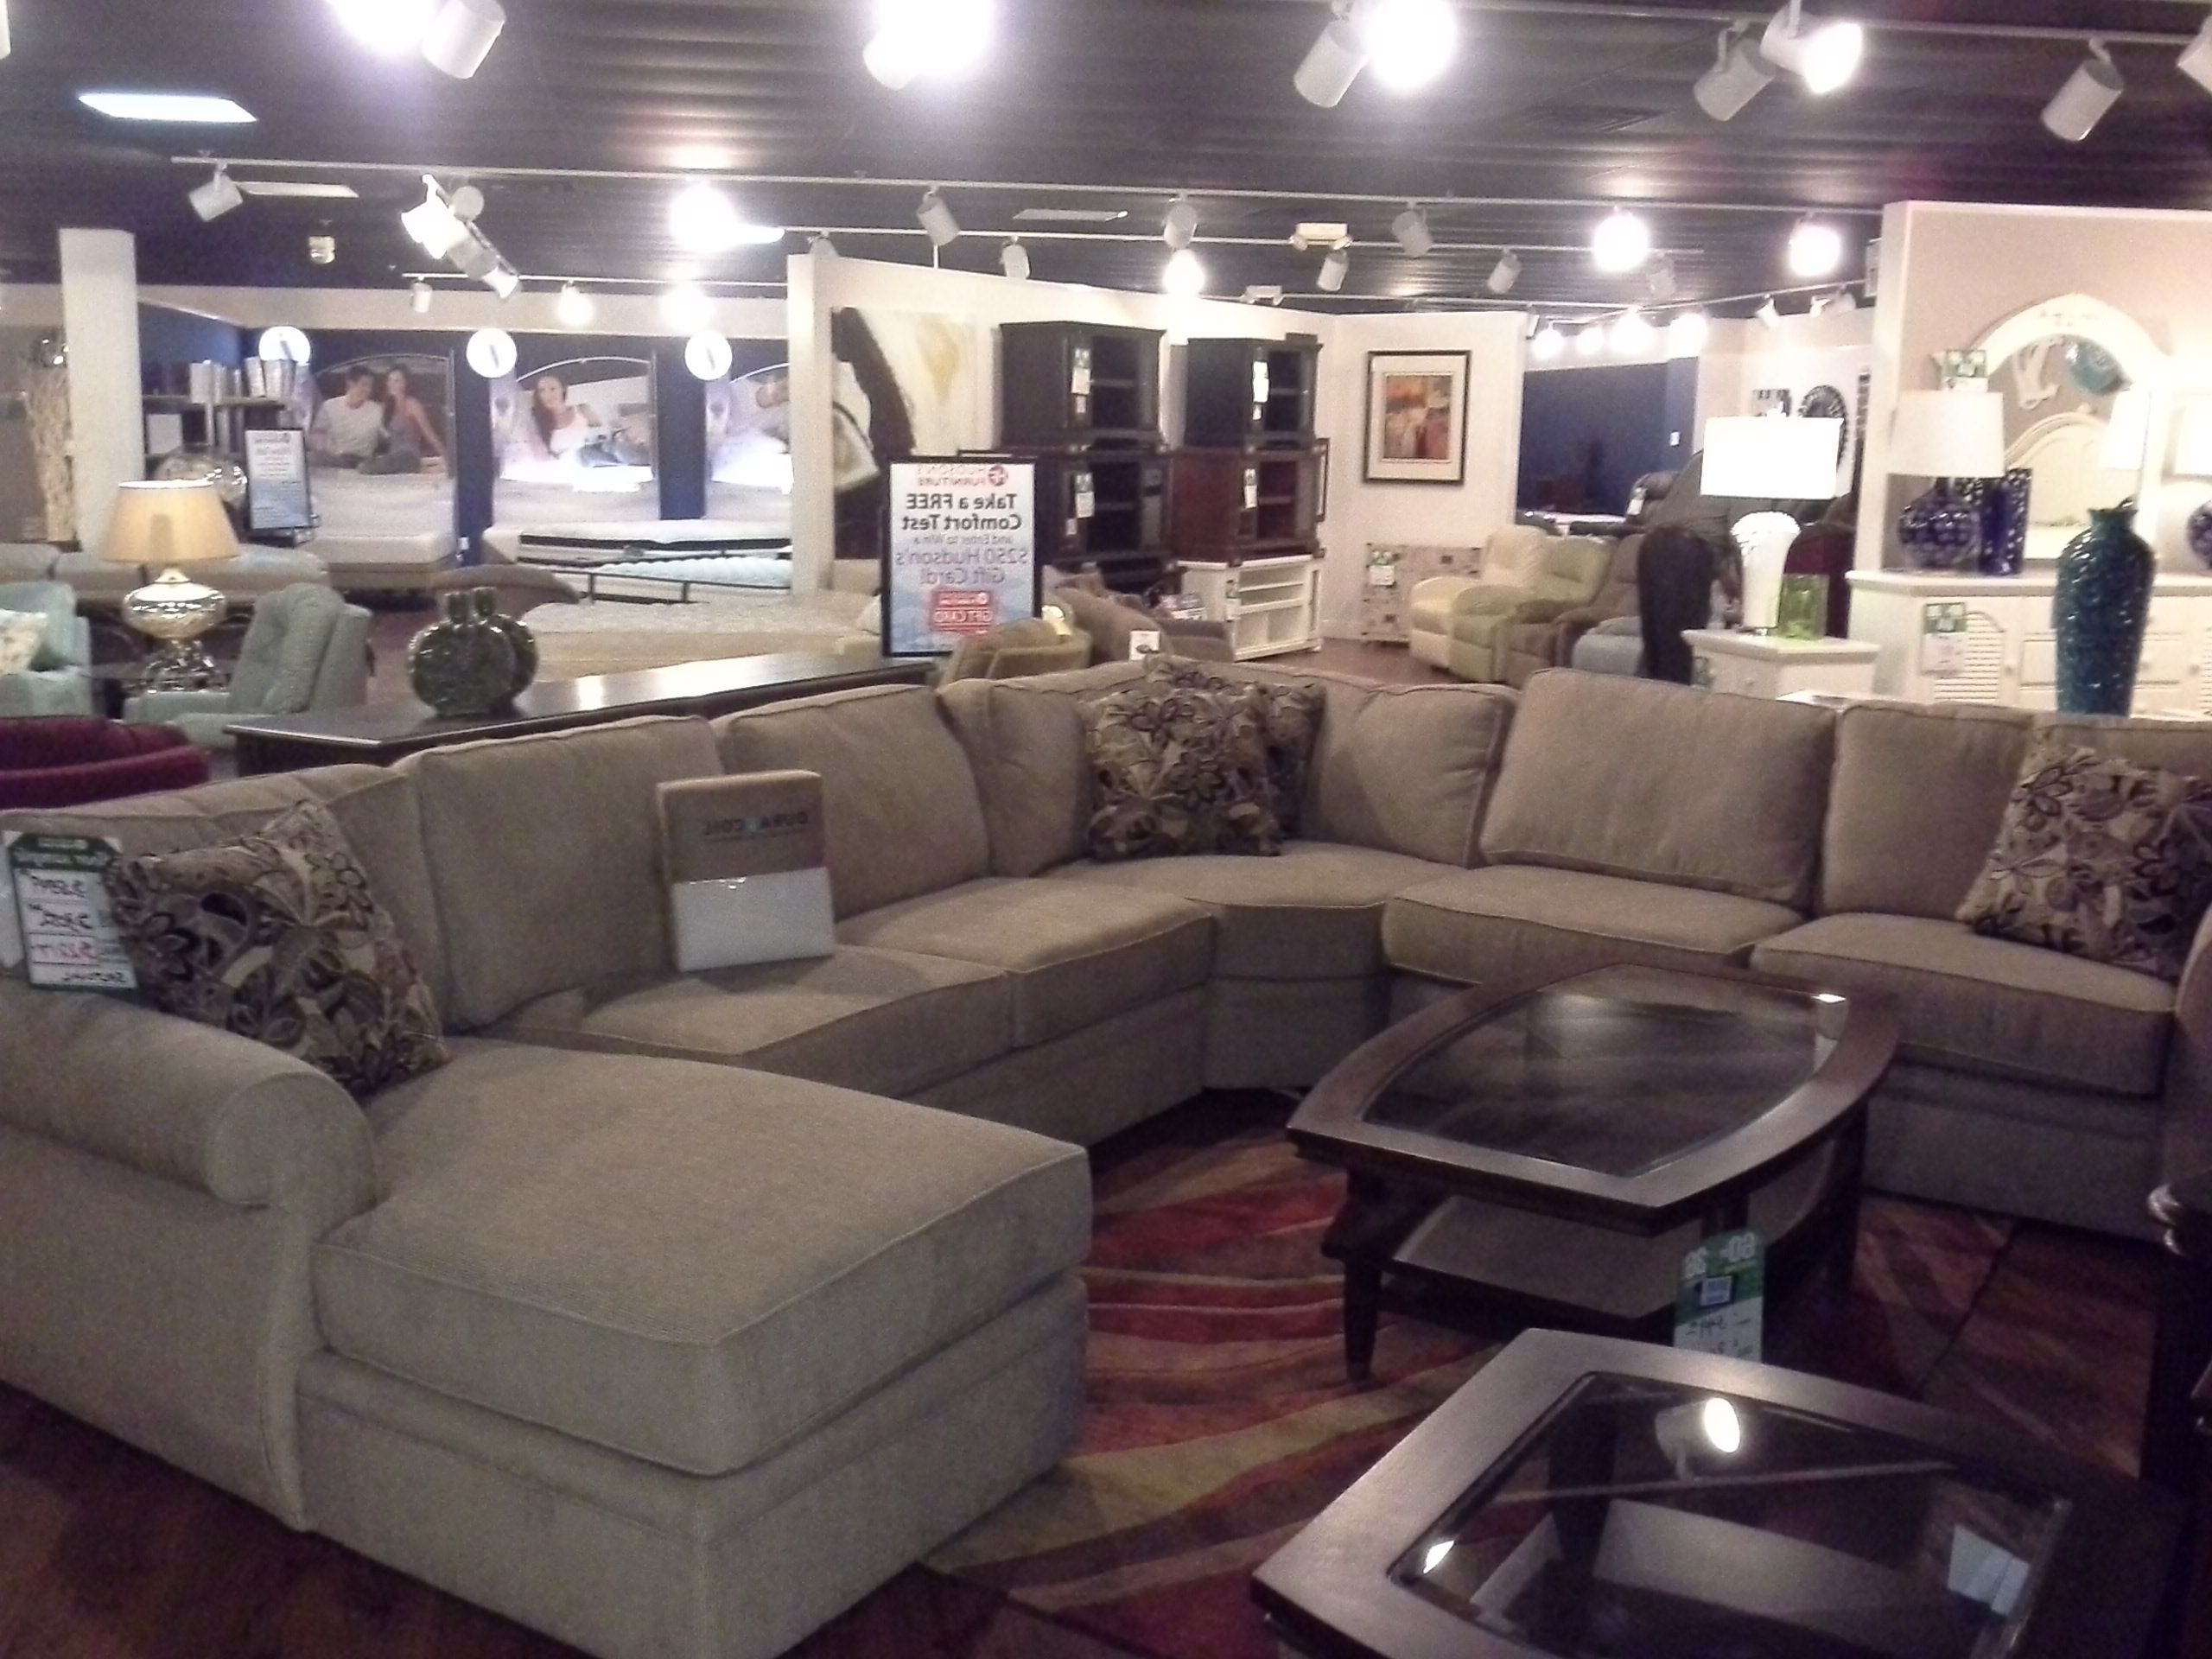 House Regarding 2017 Broyhill Sectional Sofas (View 15 of 15)